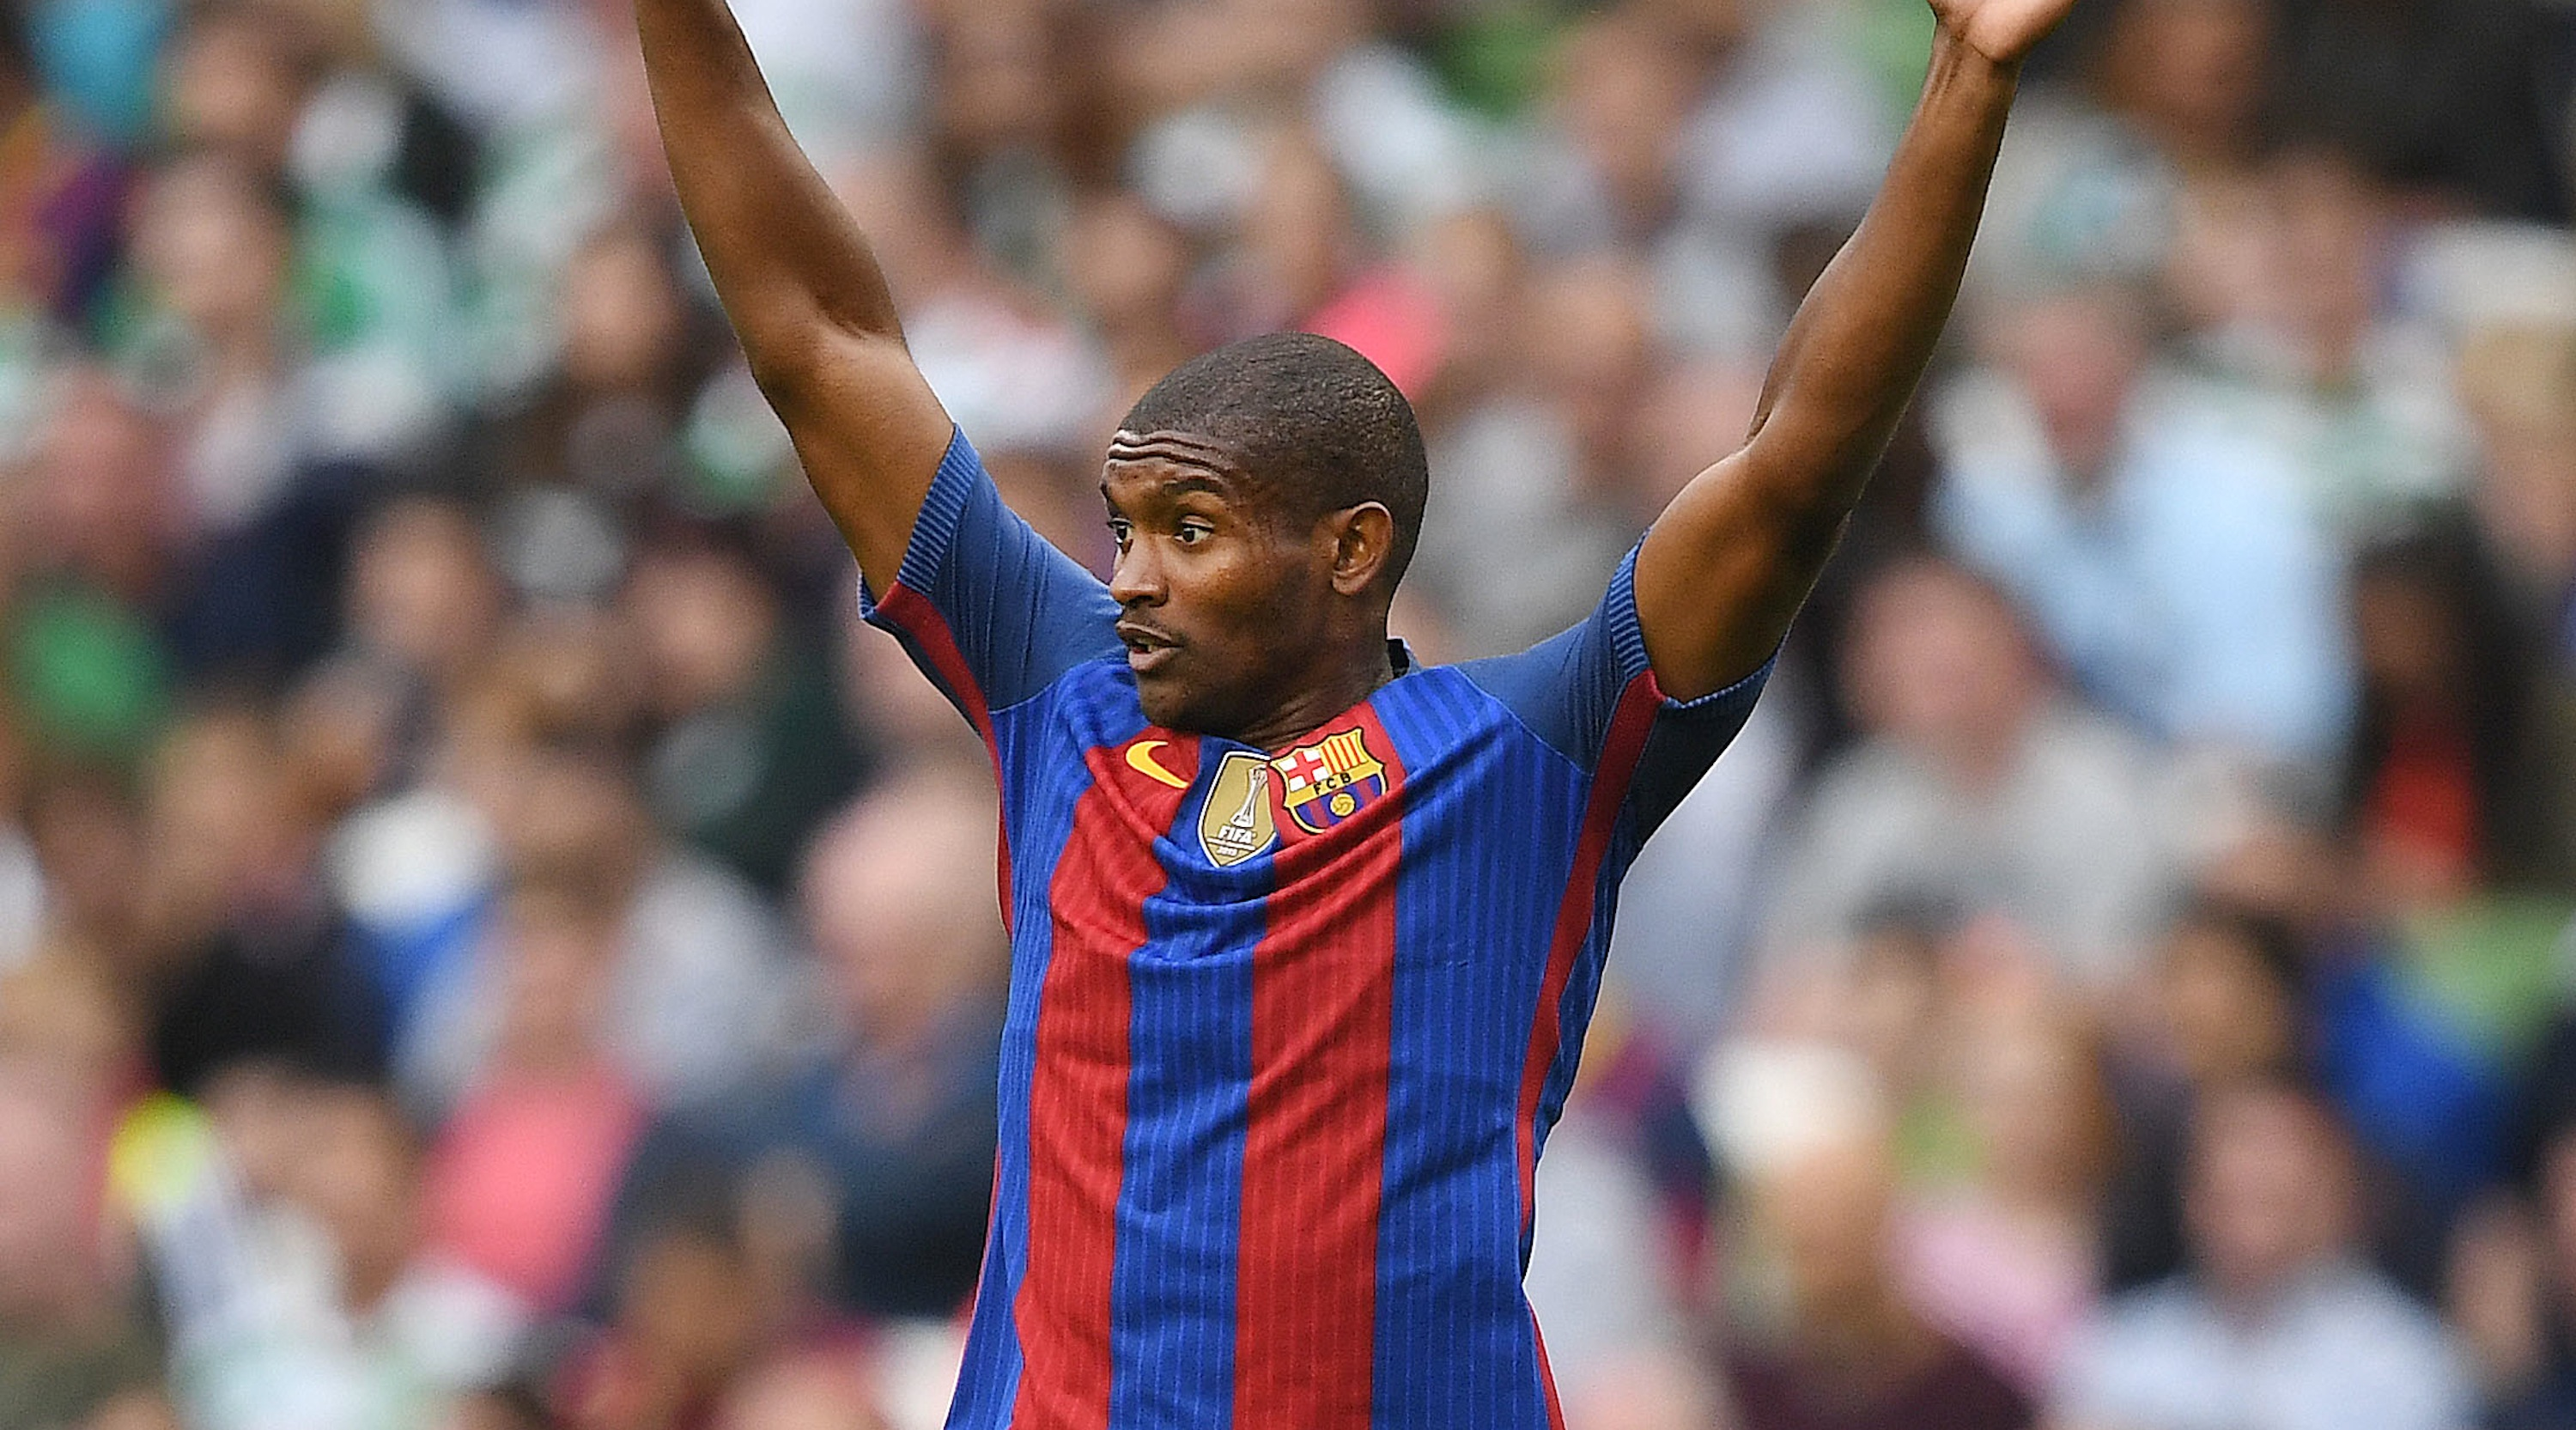 DUBLIN, IRELAND - JULY 30: Marlon Santos of Barcelona during the International Champions Cup series match between Barcelona and Celtic at Aviva Stadium on July 30, 2016 in Dublin, Ireland. (Photo by Charles McQuillan/Getty Images)